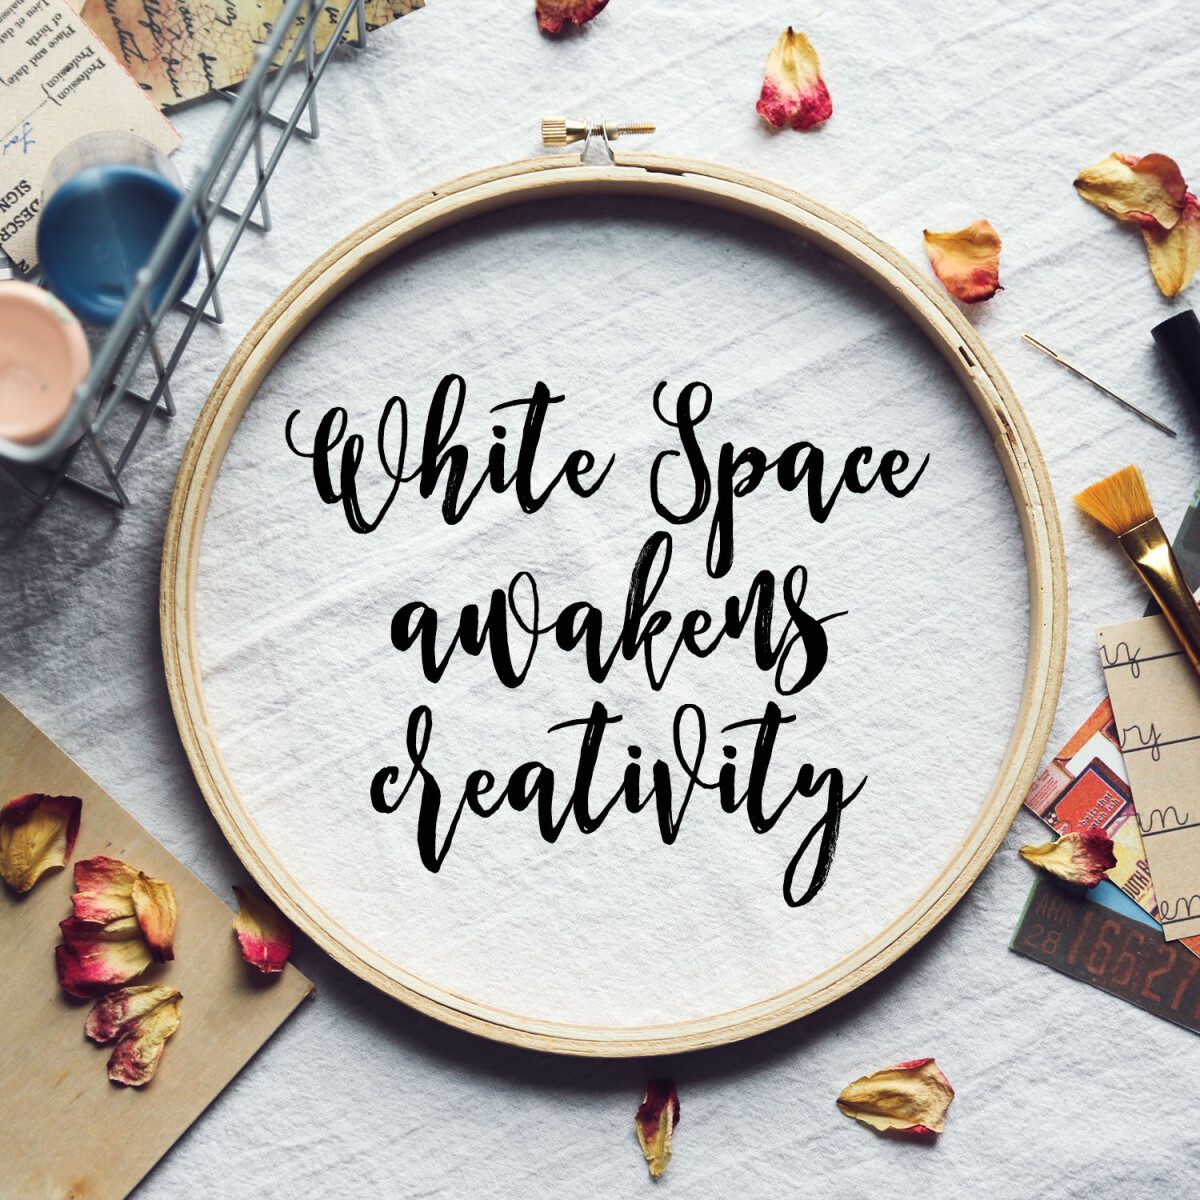 For the Ladies: White Space Retreat